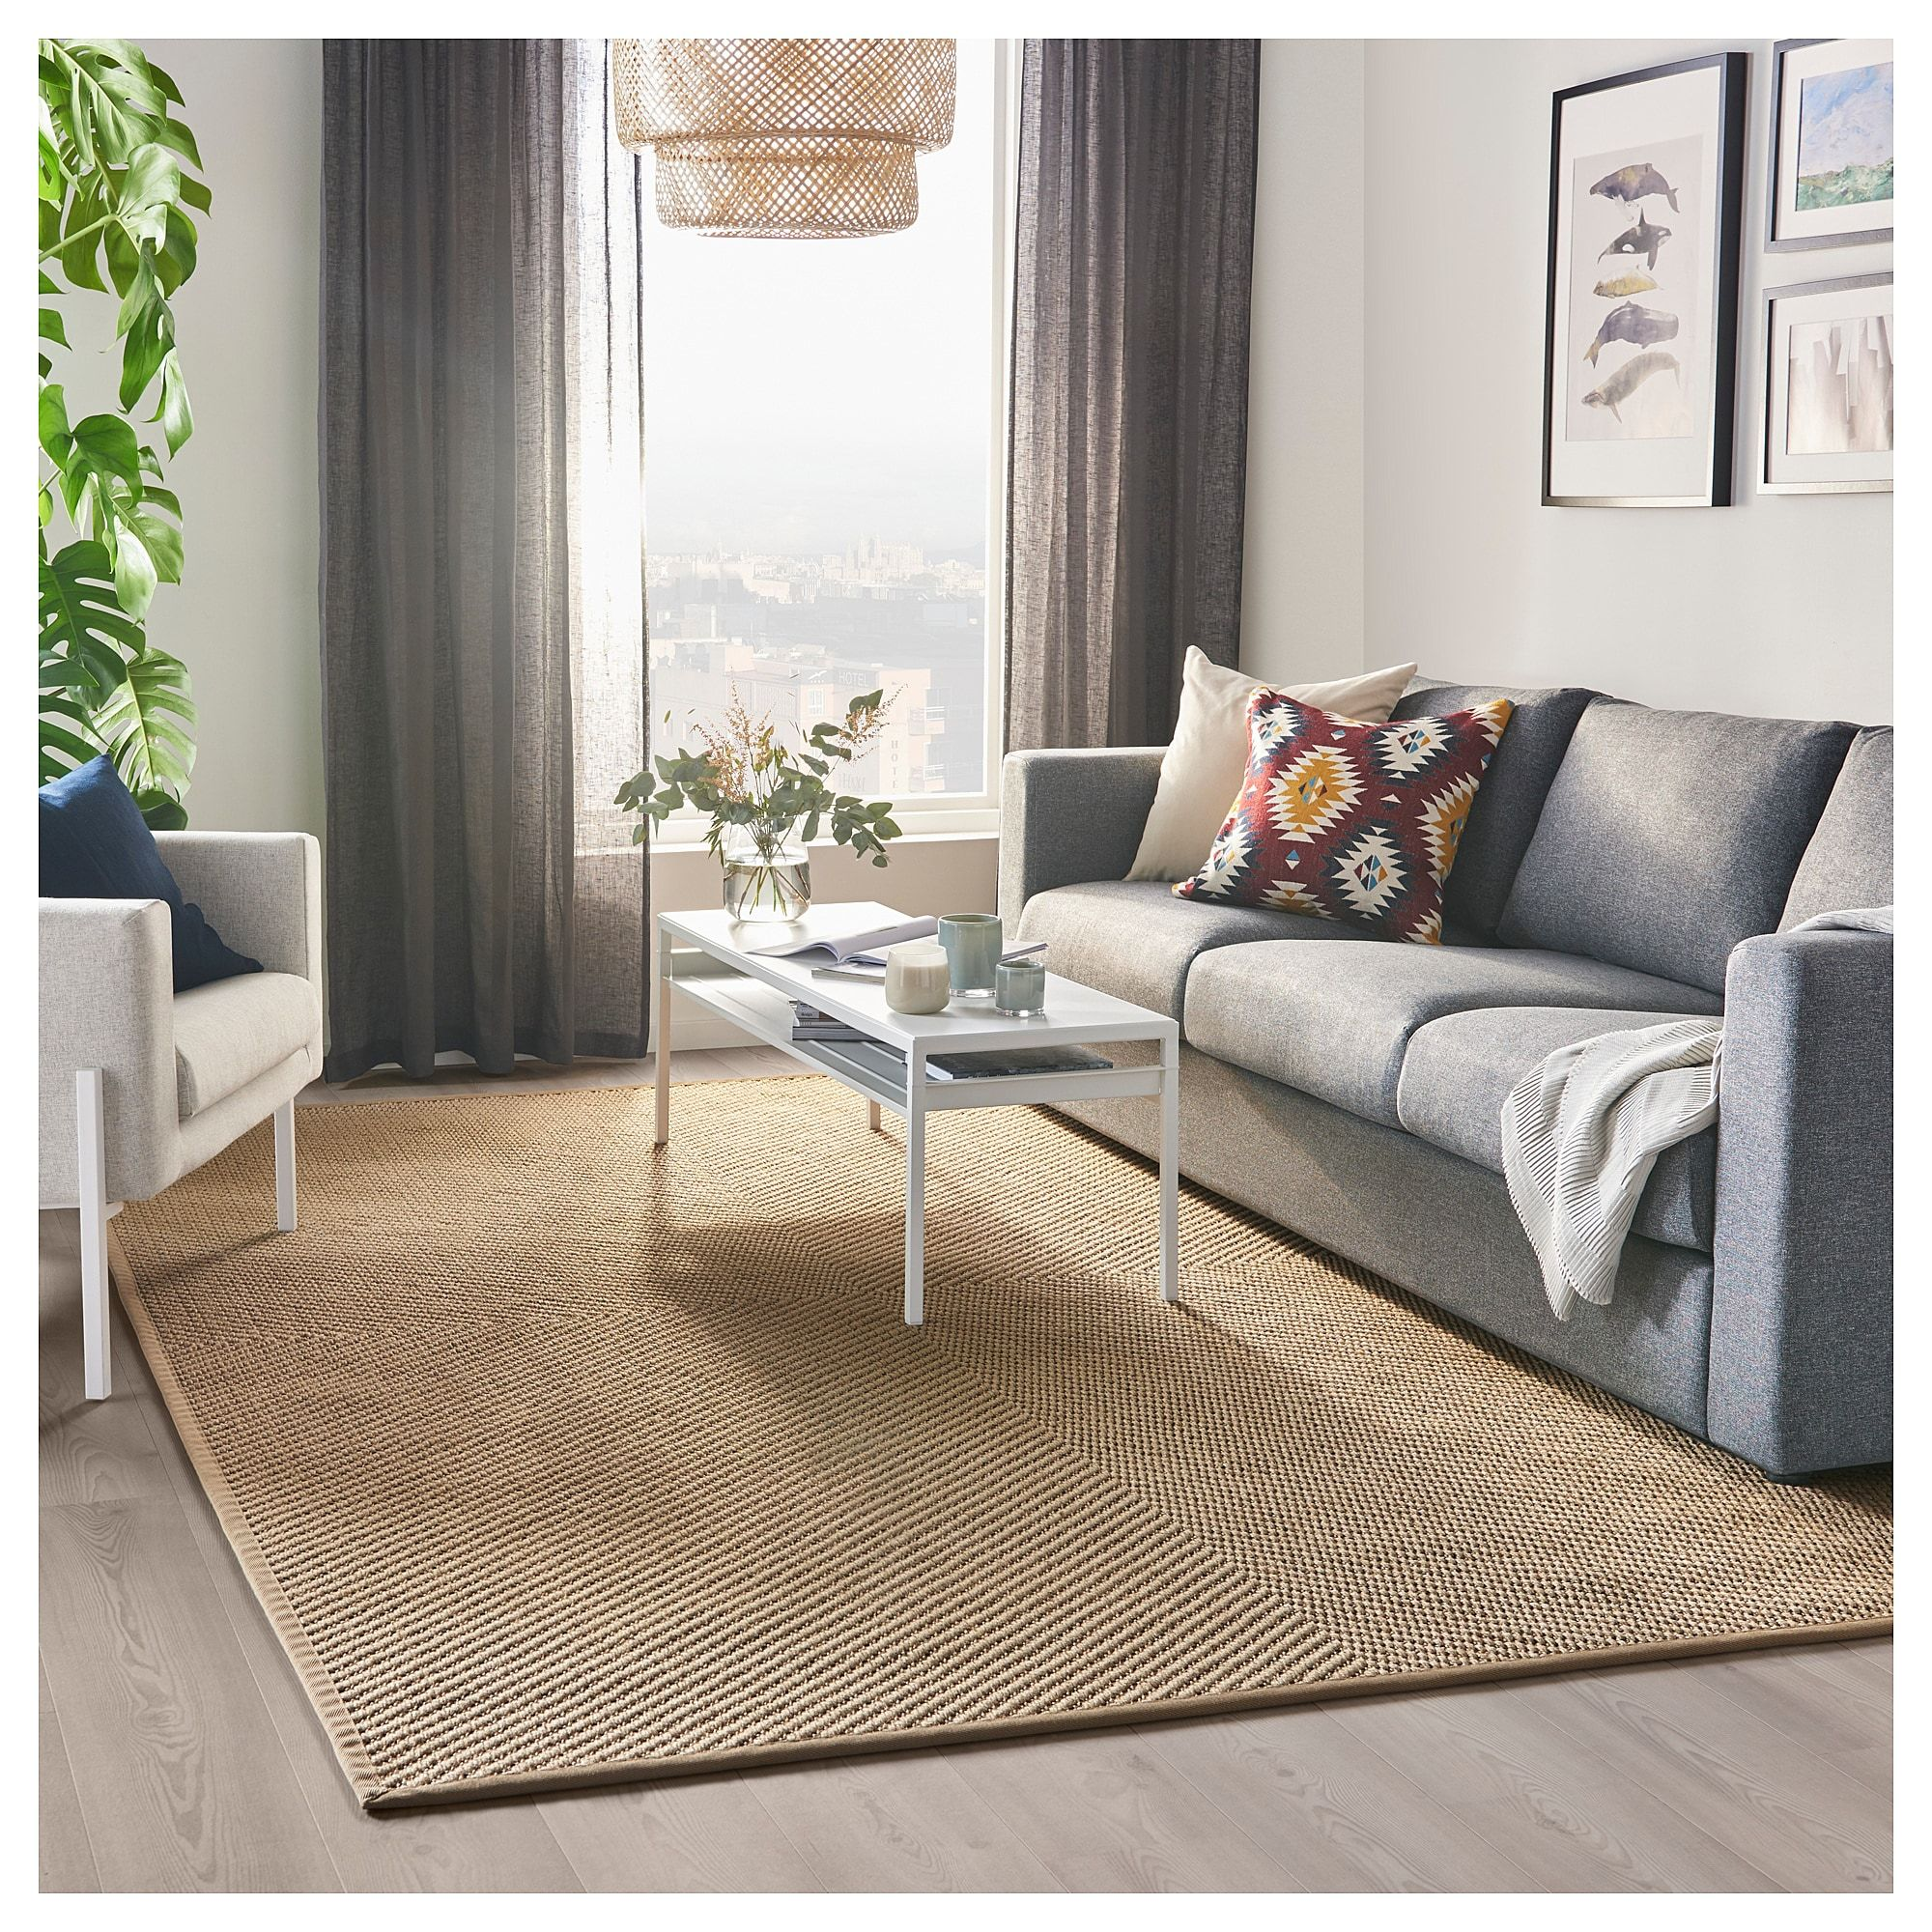 Hellested Rug Flatwoven Natural Brown Find It Here Ikea Rugs In Living Room Ikea Rug Living Room Carpet